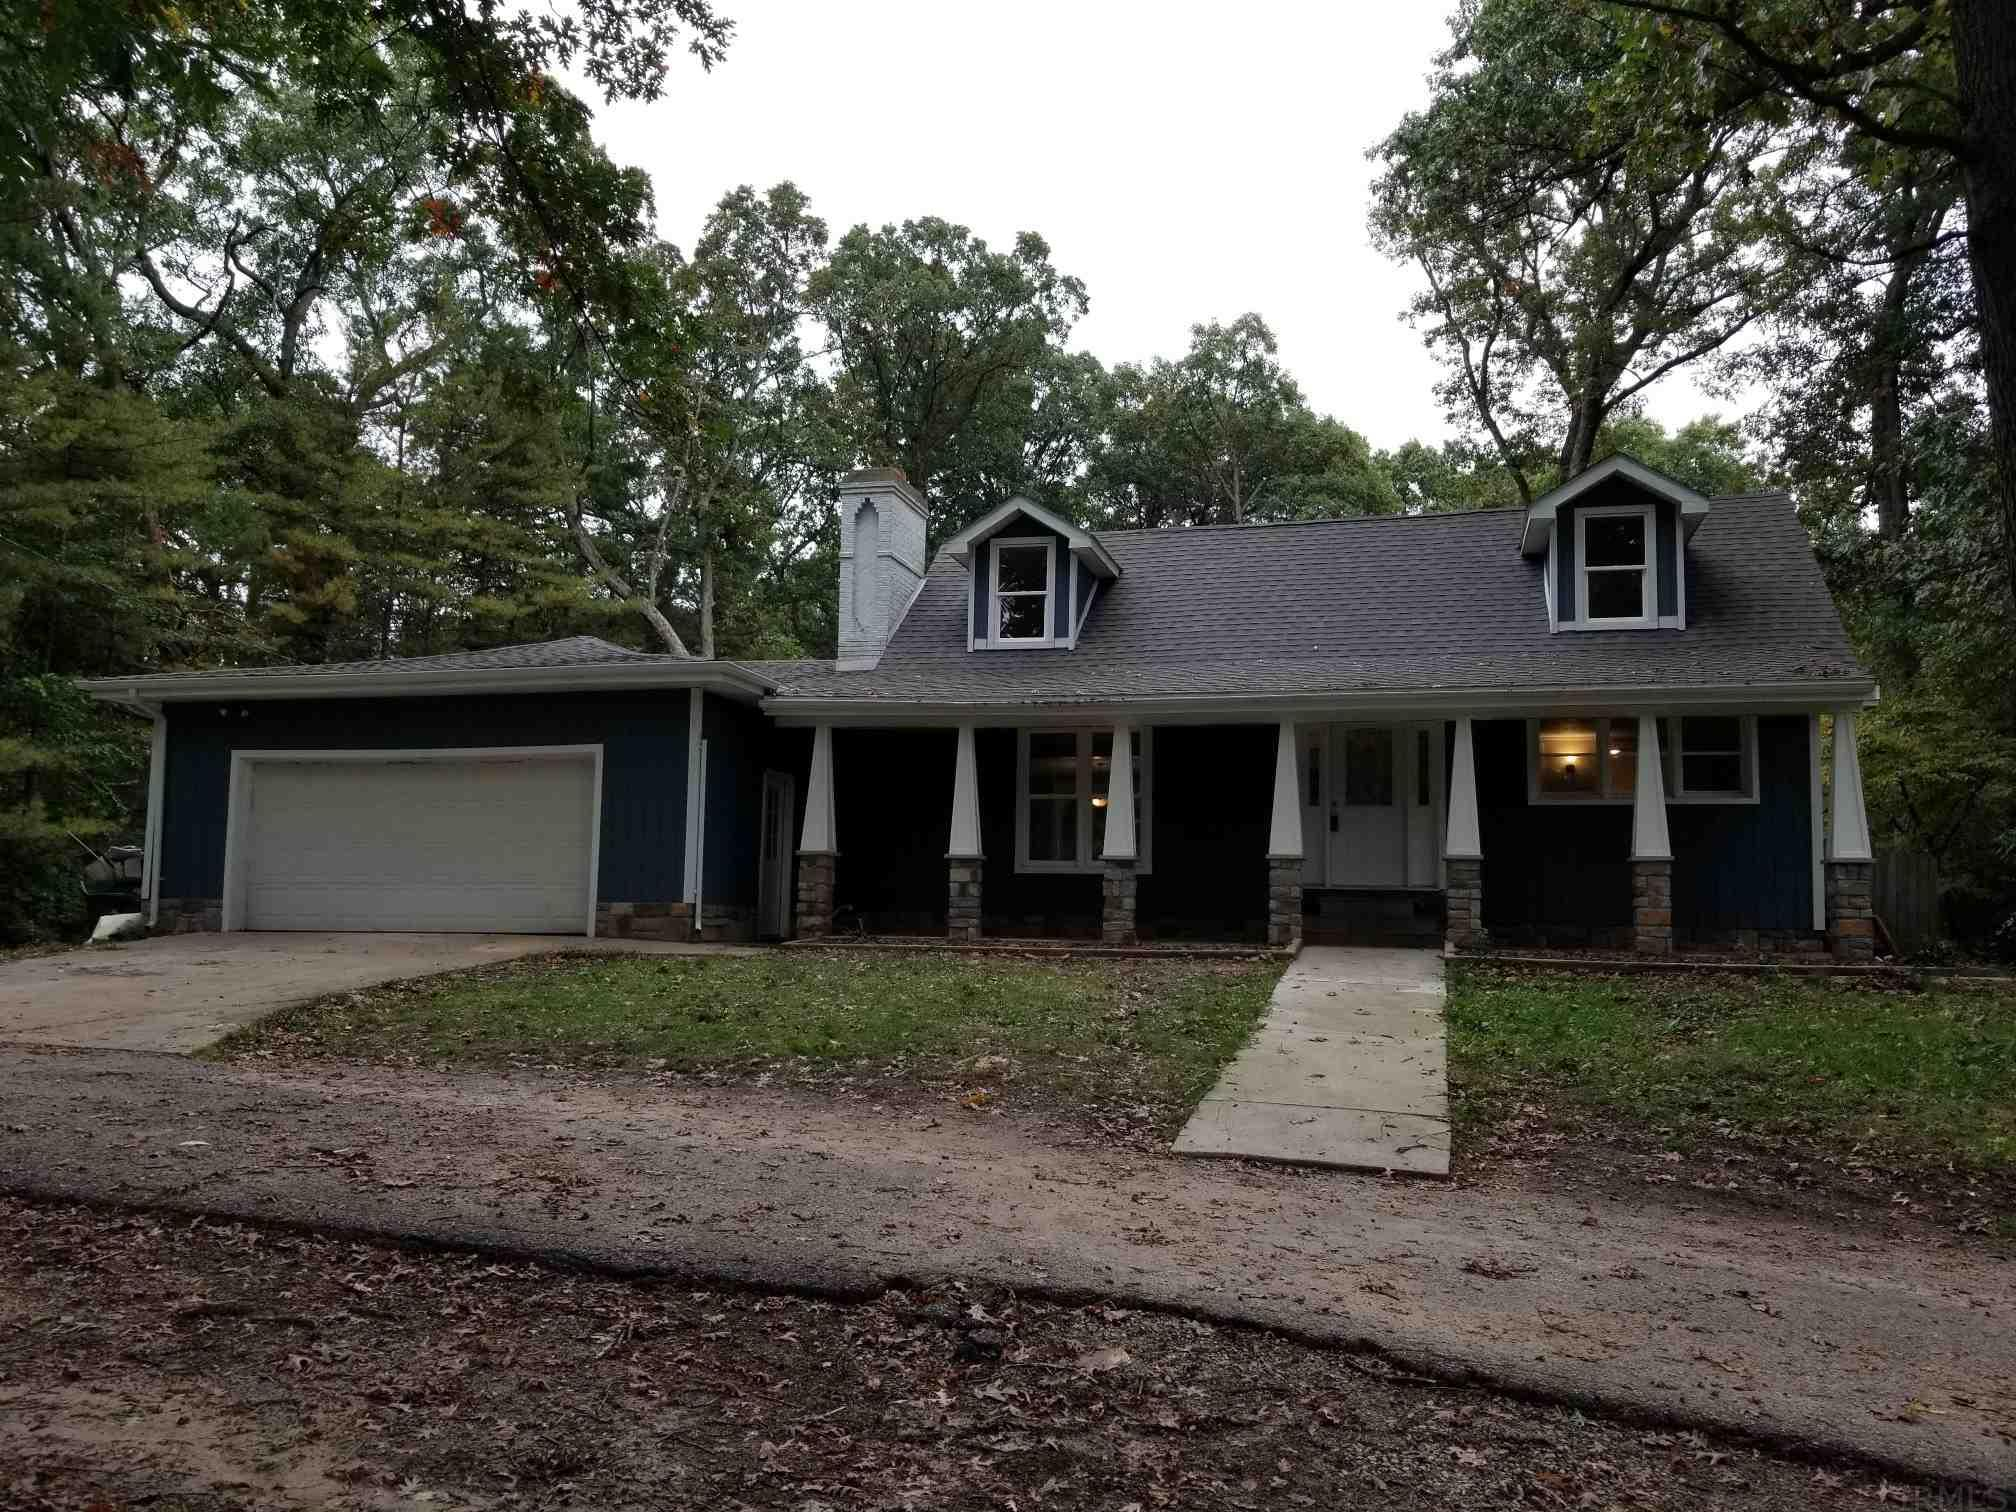 17181 Brick Granger, IN 46530